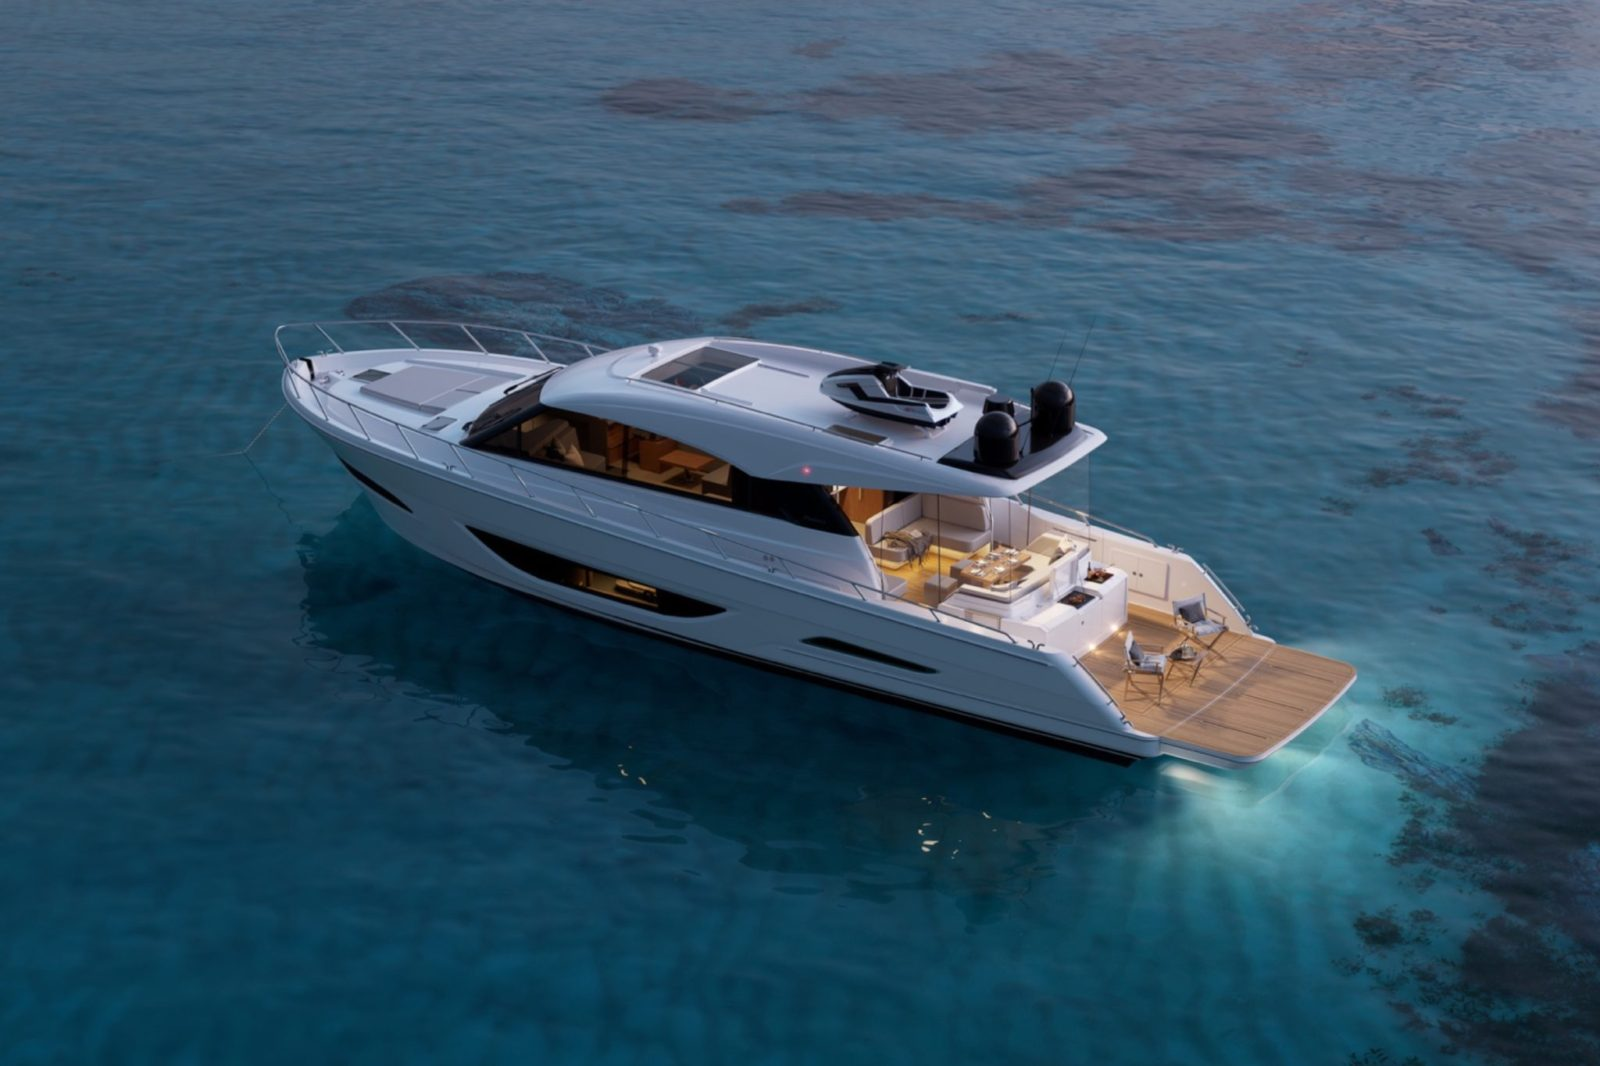 s60-sedan-motor-yacht-is-a-long-range-cruiser-built-for-adventure,-comfort,-and-stability